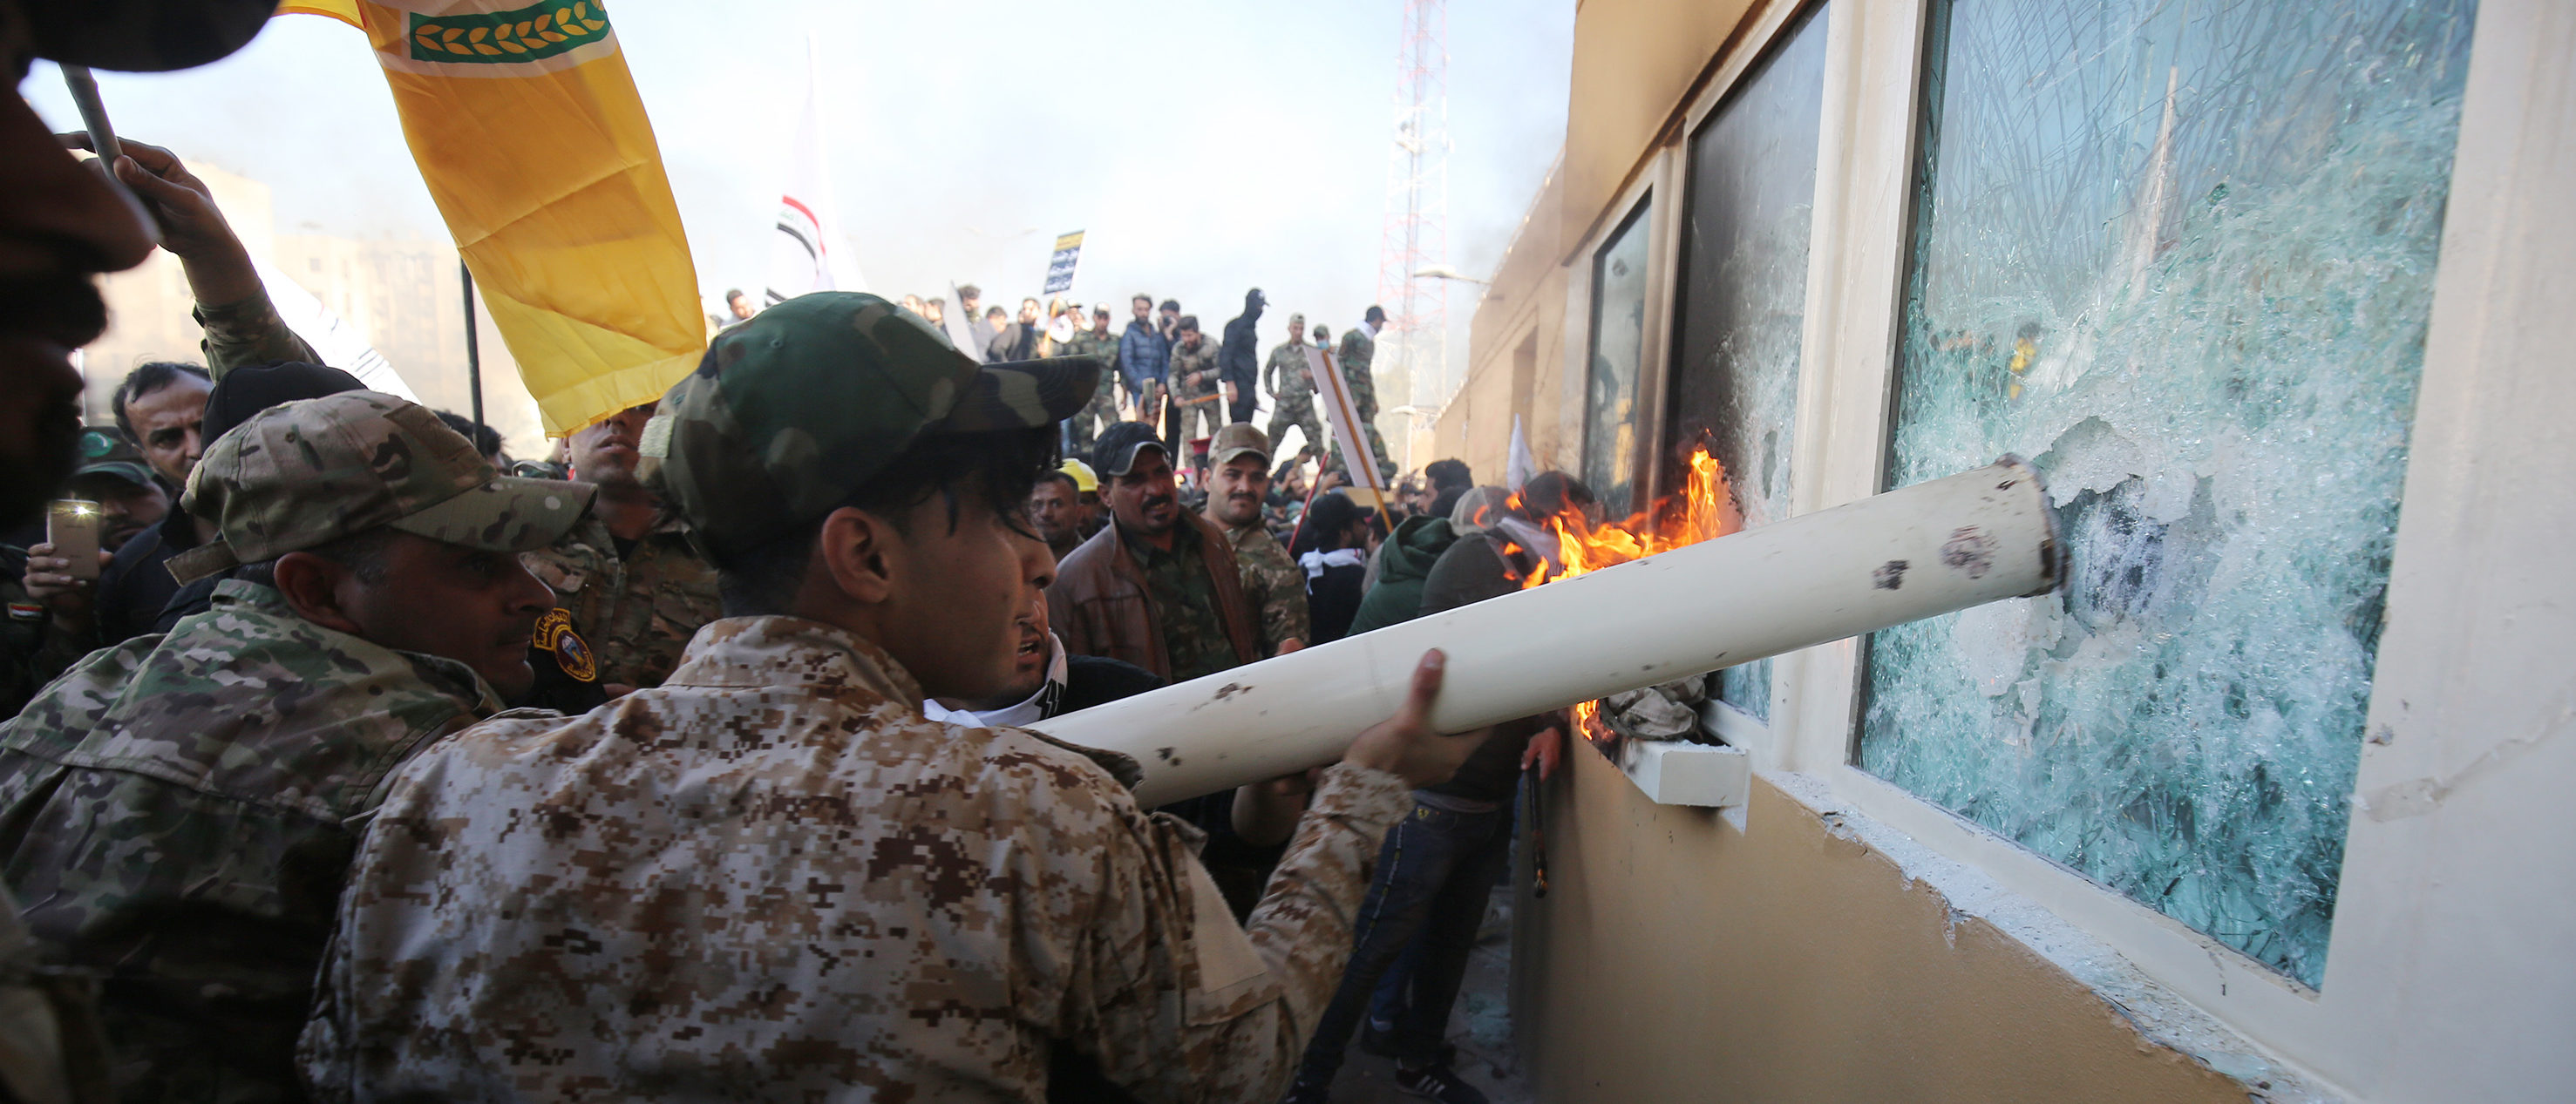 Iraqi protesters use a plumbing pipe to break the bullet-proof glass of the US embassy's windows in Baghdad, as thousands of angry Iraqis, including members the Hashed al-Shaabi breached the outer wall of the diplomatic mission on December 31, 2019. (AHMAD AL-RUBAYE/AFP via Getty Images)